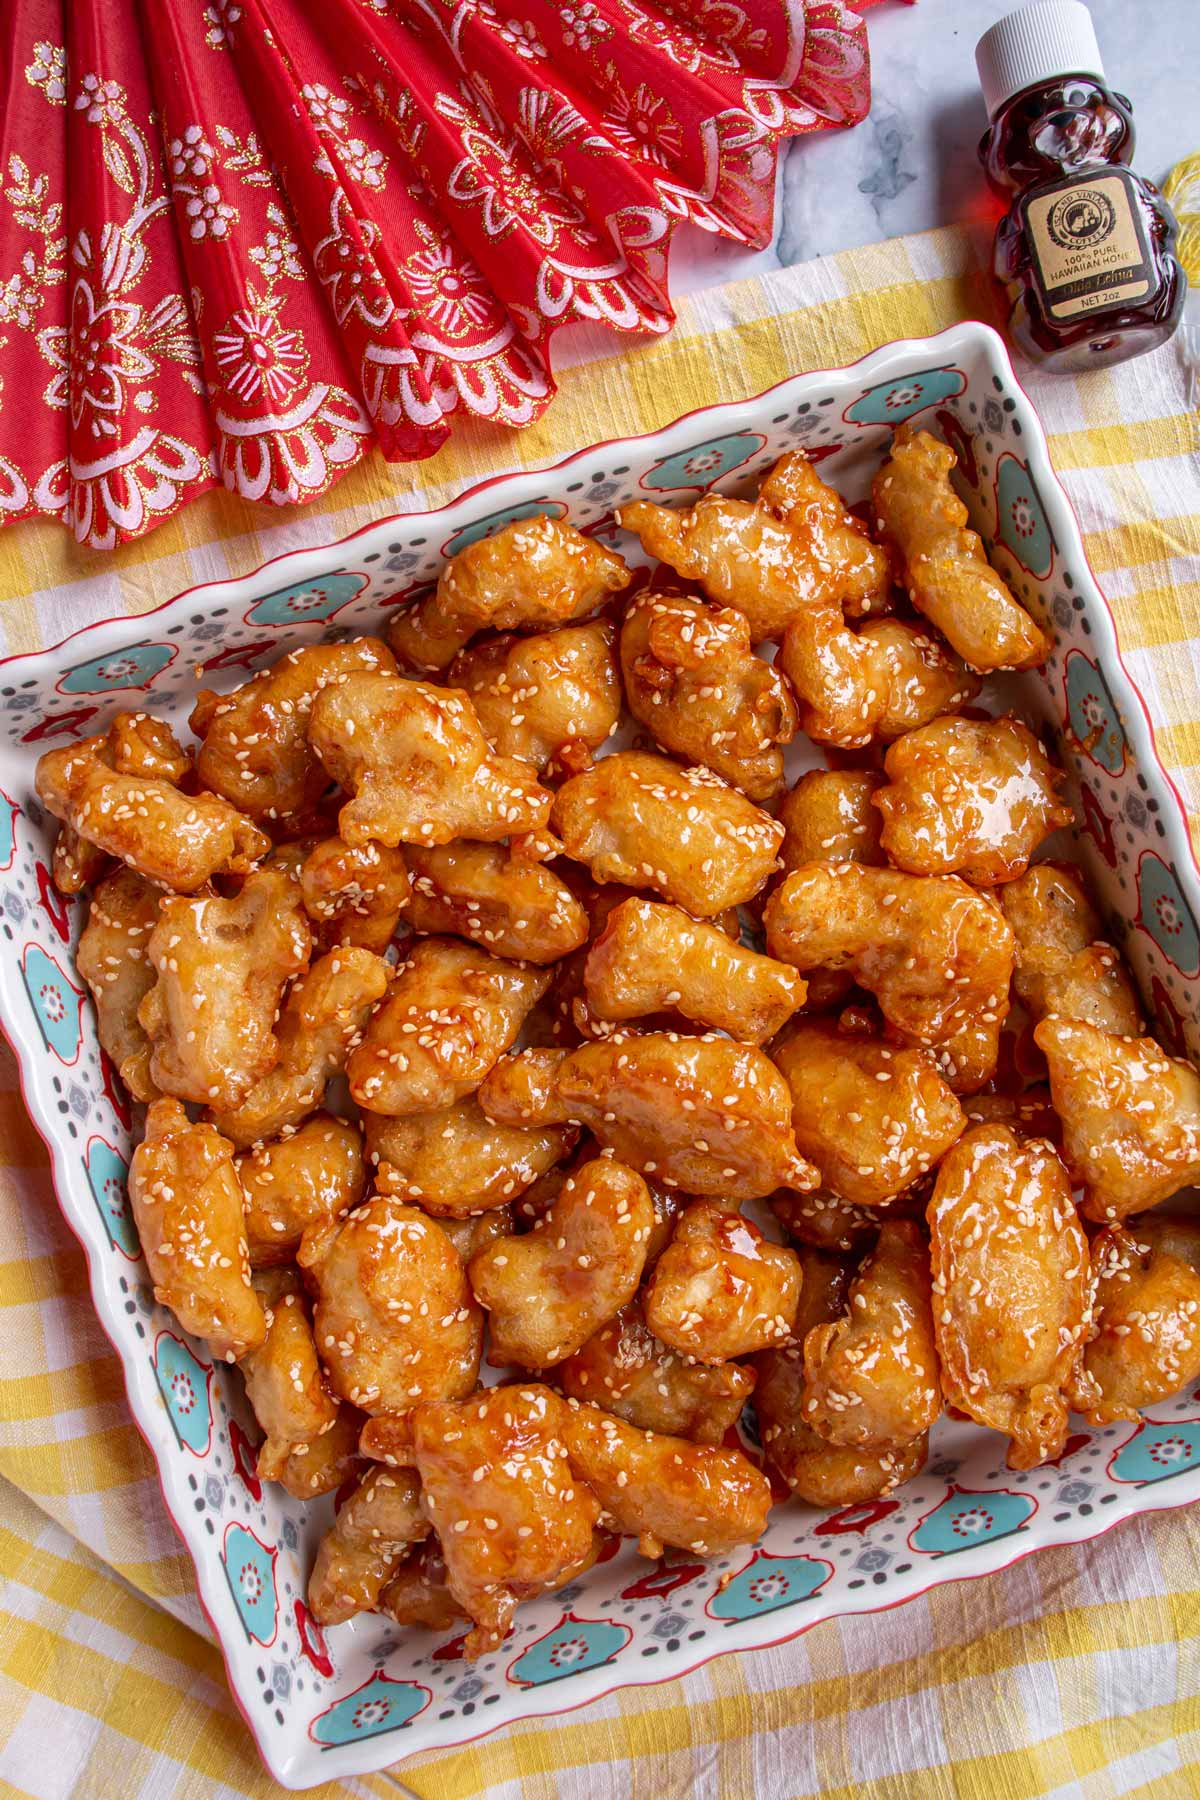 A colorful square dish filled with Chinese honey sesame chicken next to a red folding fan.